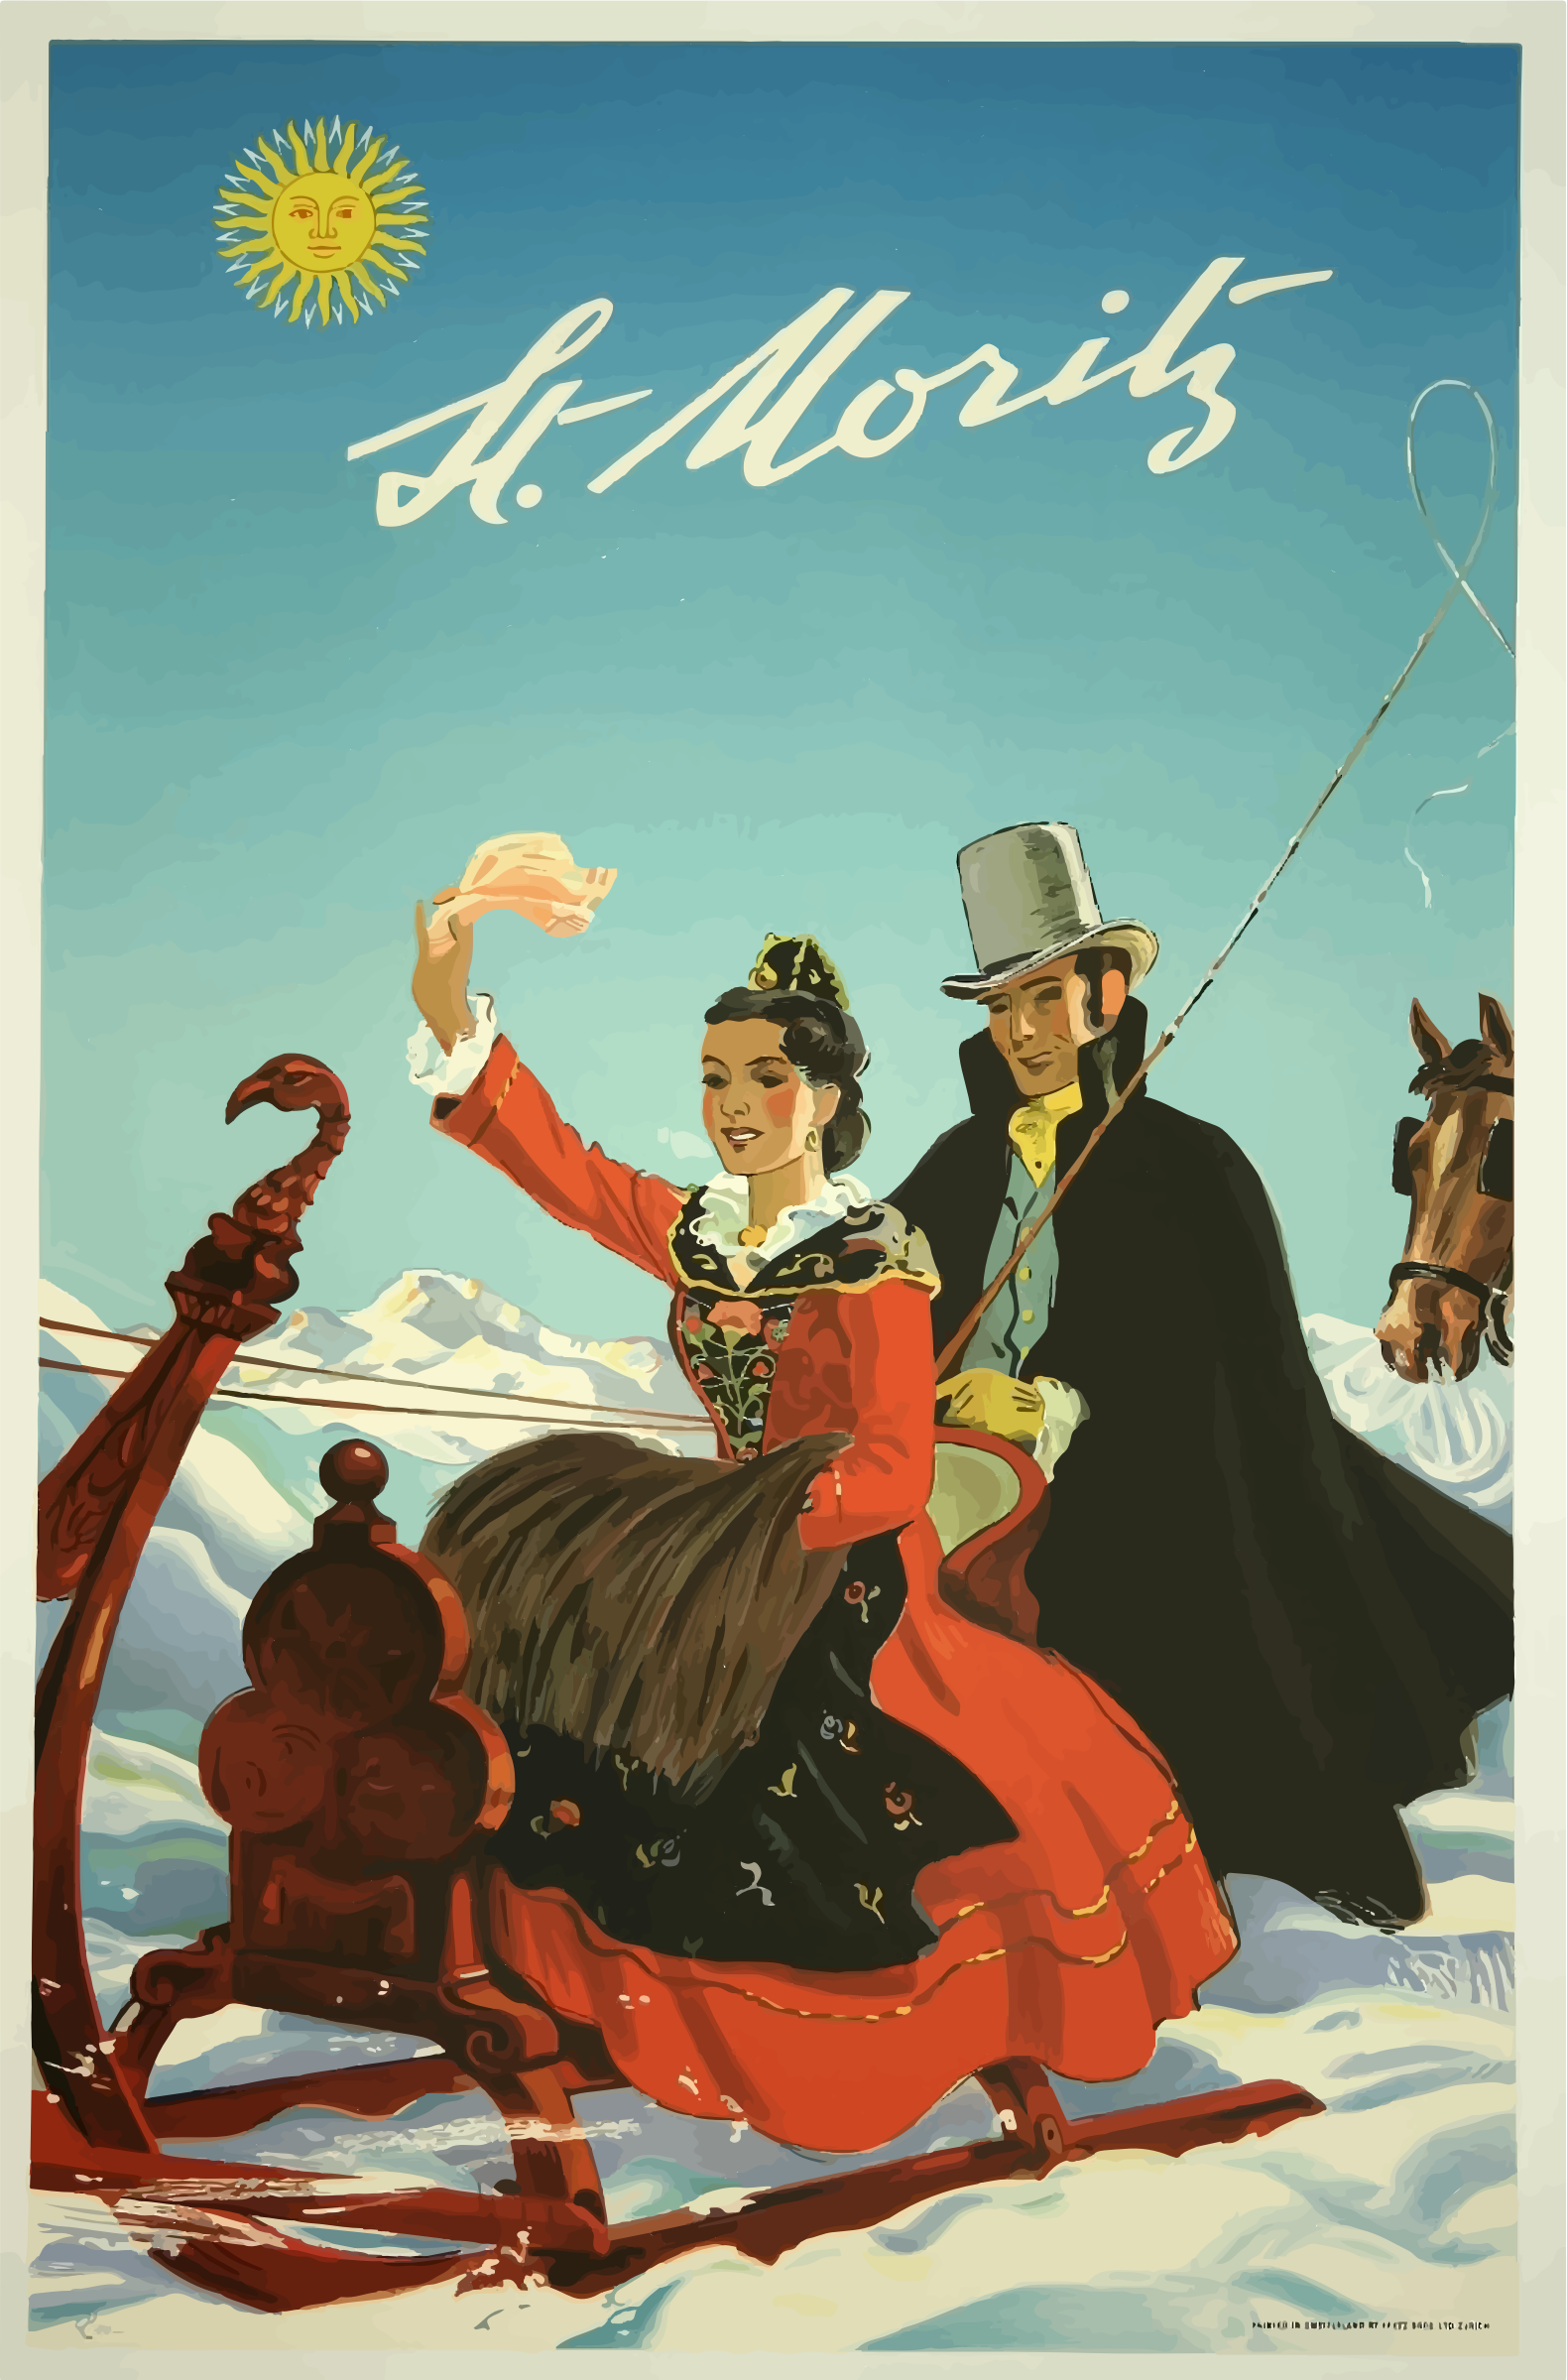 Vintage Travel Poster St Moritz Switzerland 2 by GDJ